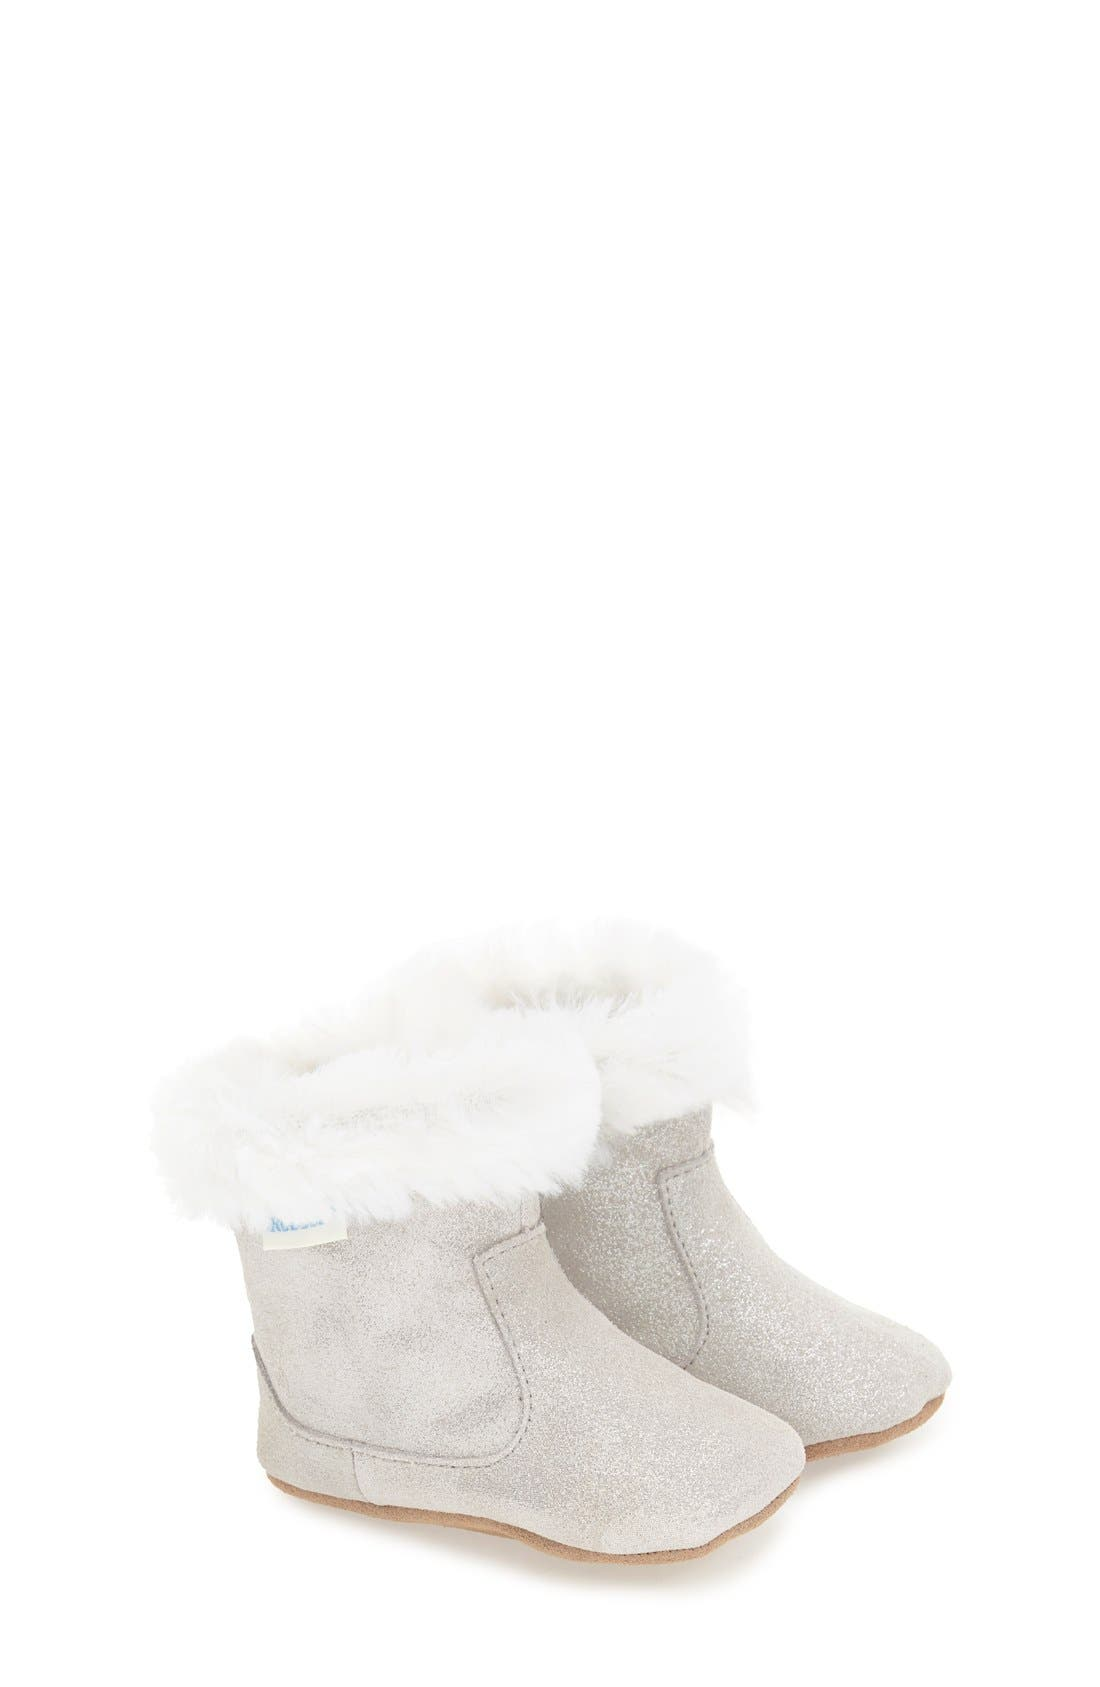 'Thea Twinkle' Bootie,                         Main,                         color,